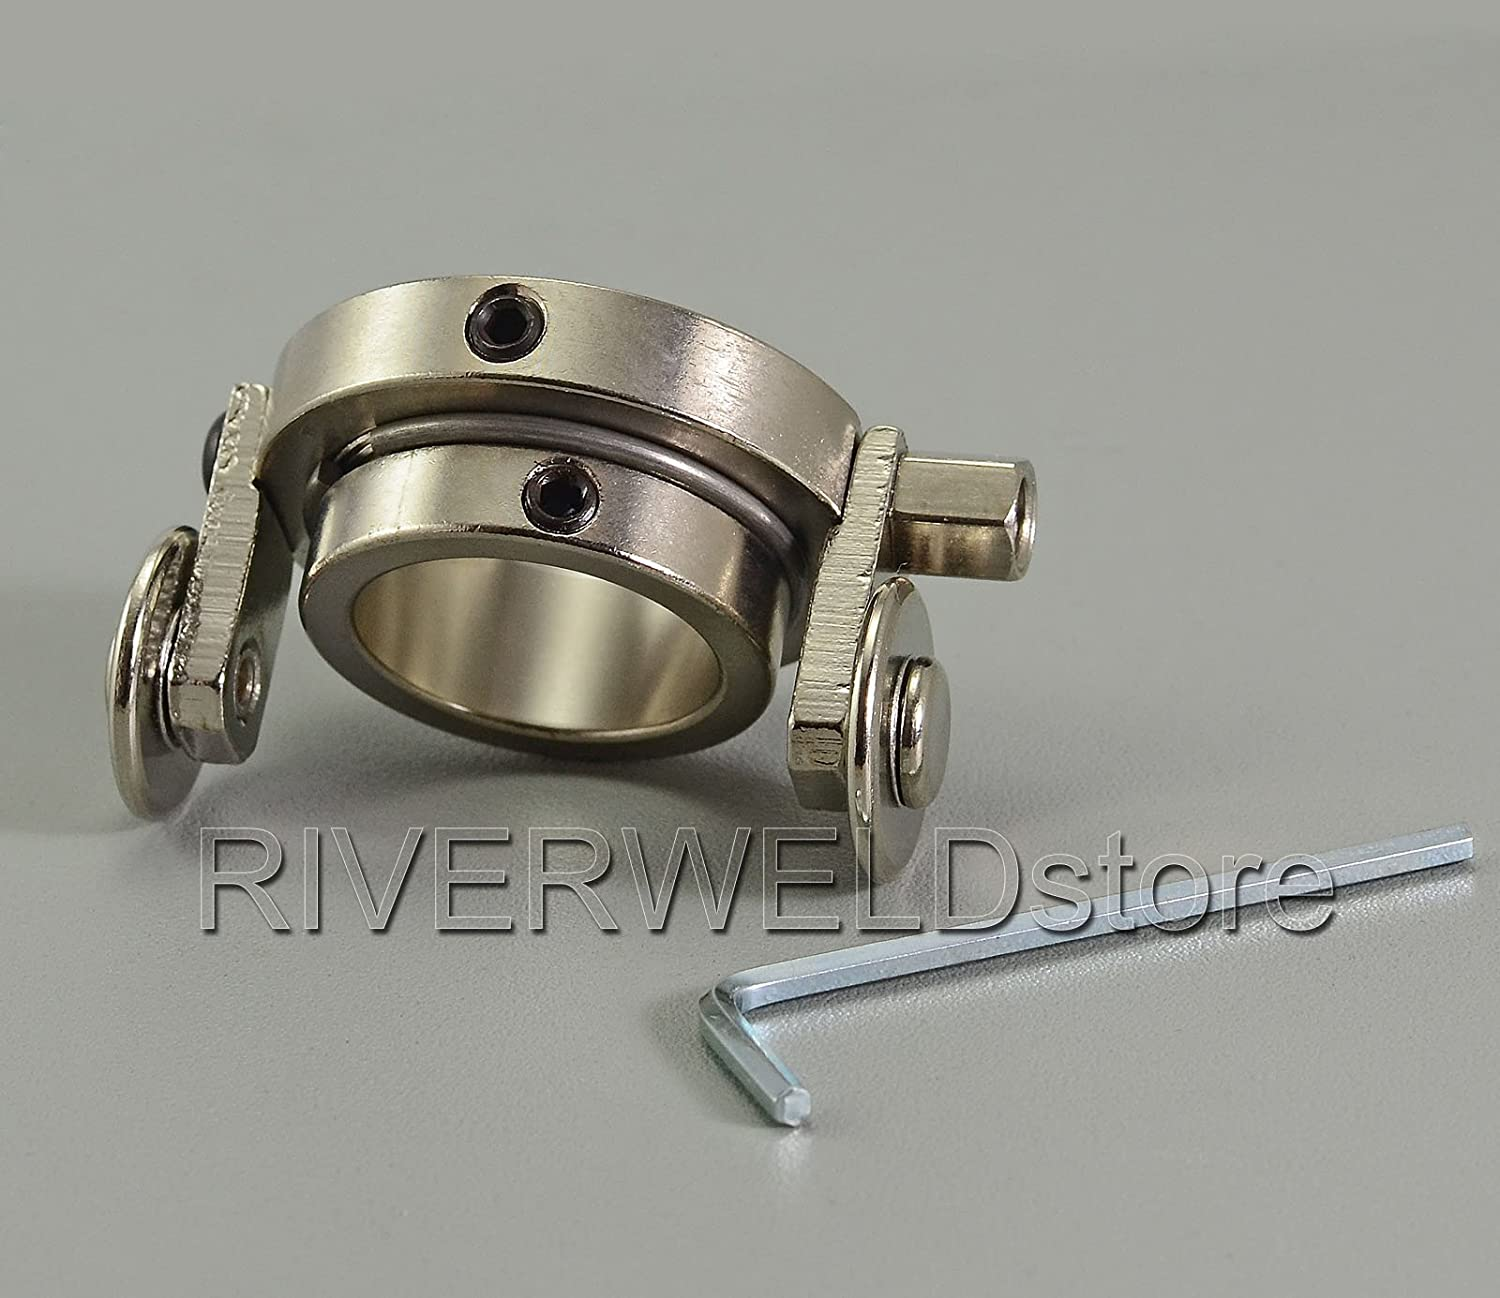 CV0037 Circle Cutting Attachment Original Fit Trafimet CB50 A51 Plasma Torch RIVERWELDstore